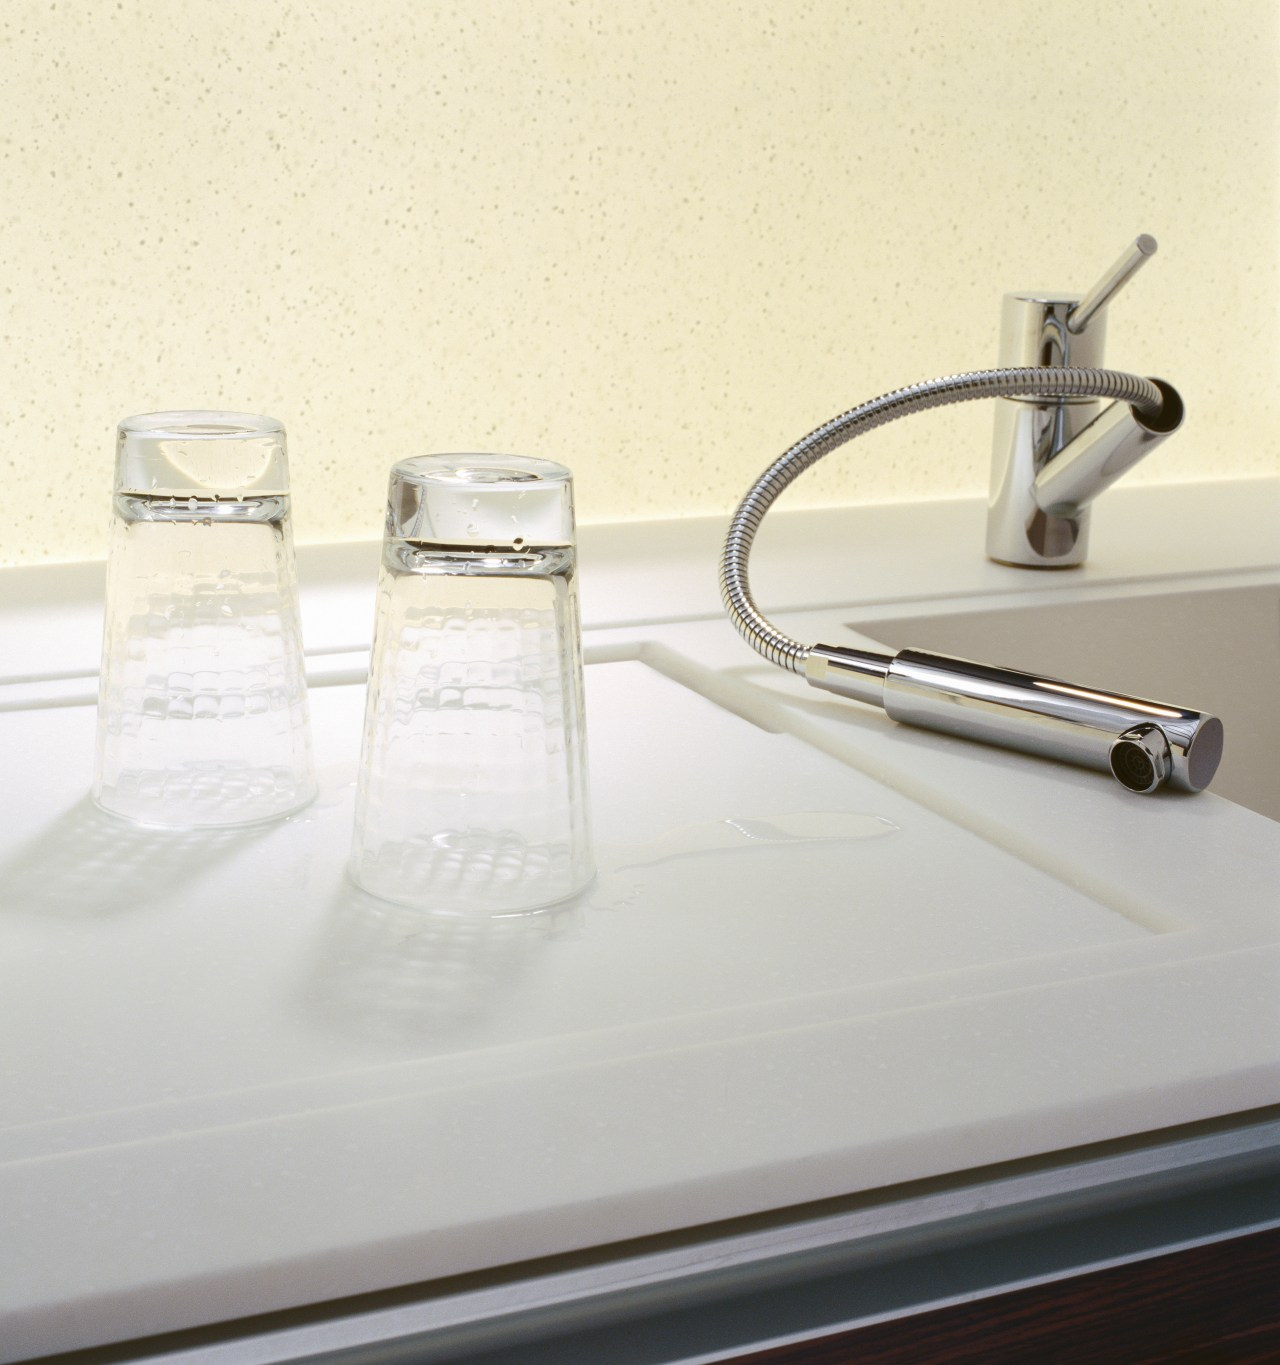 view of the new laminex freestyle surface in glass, plumbing fixture, product design, sink, tap, white